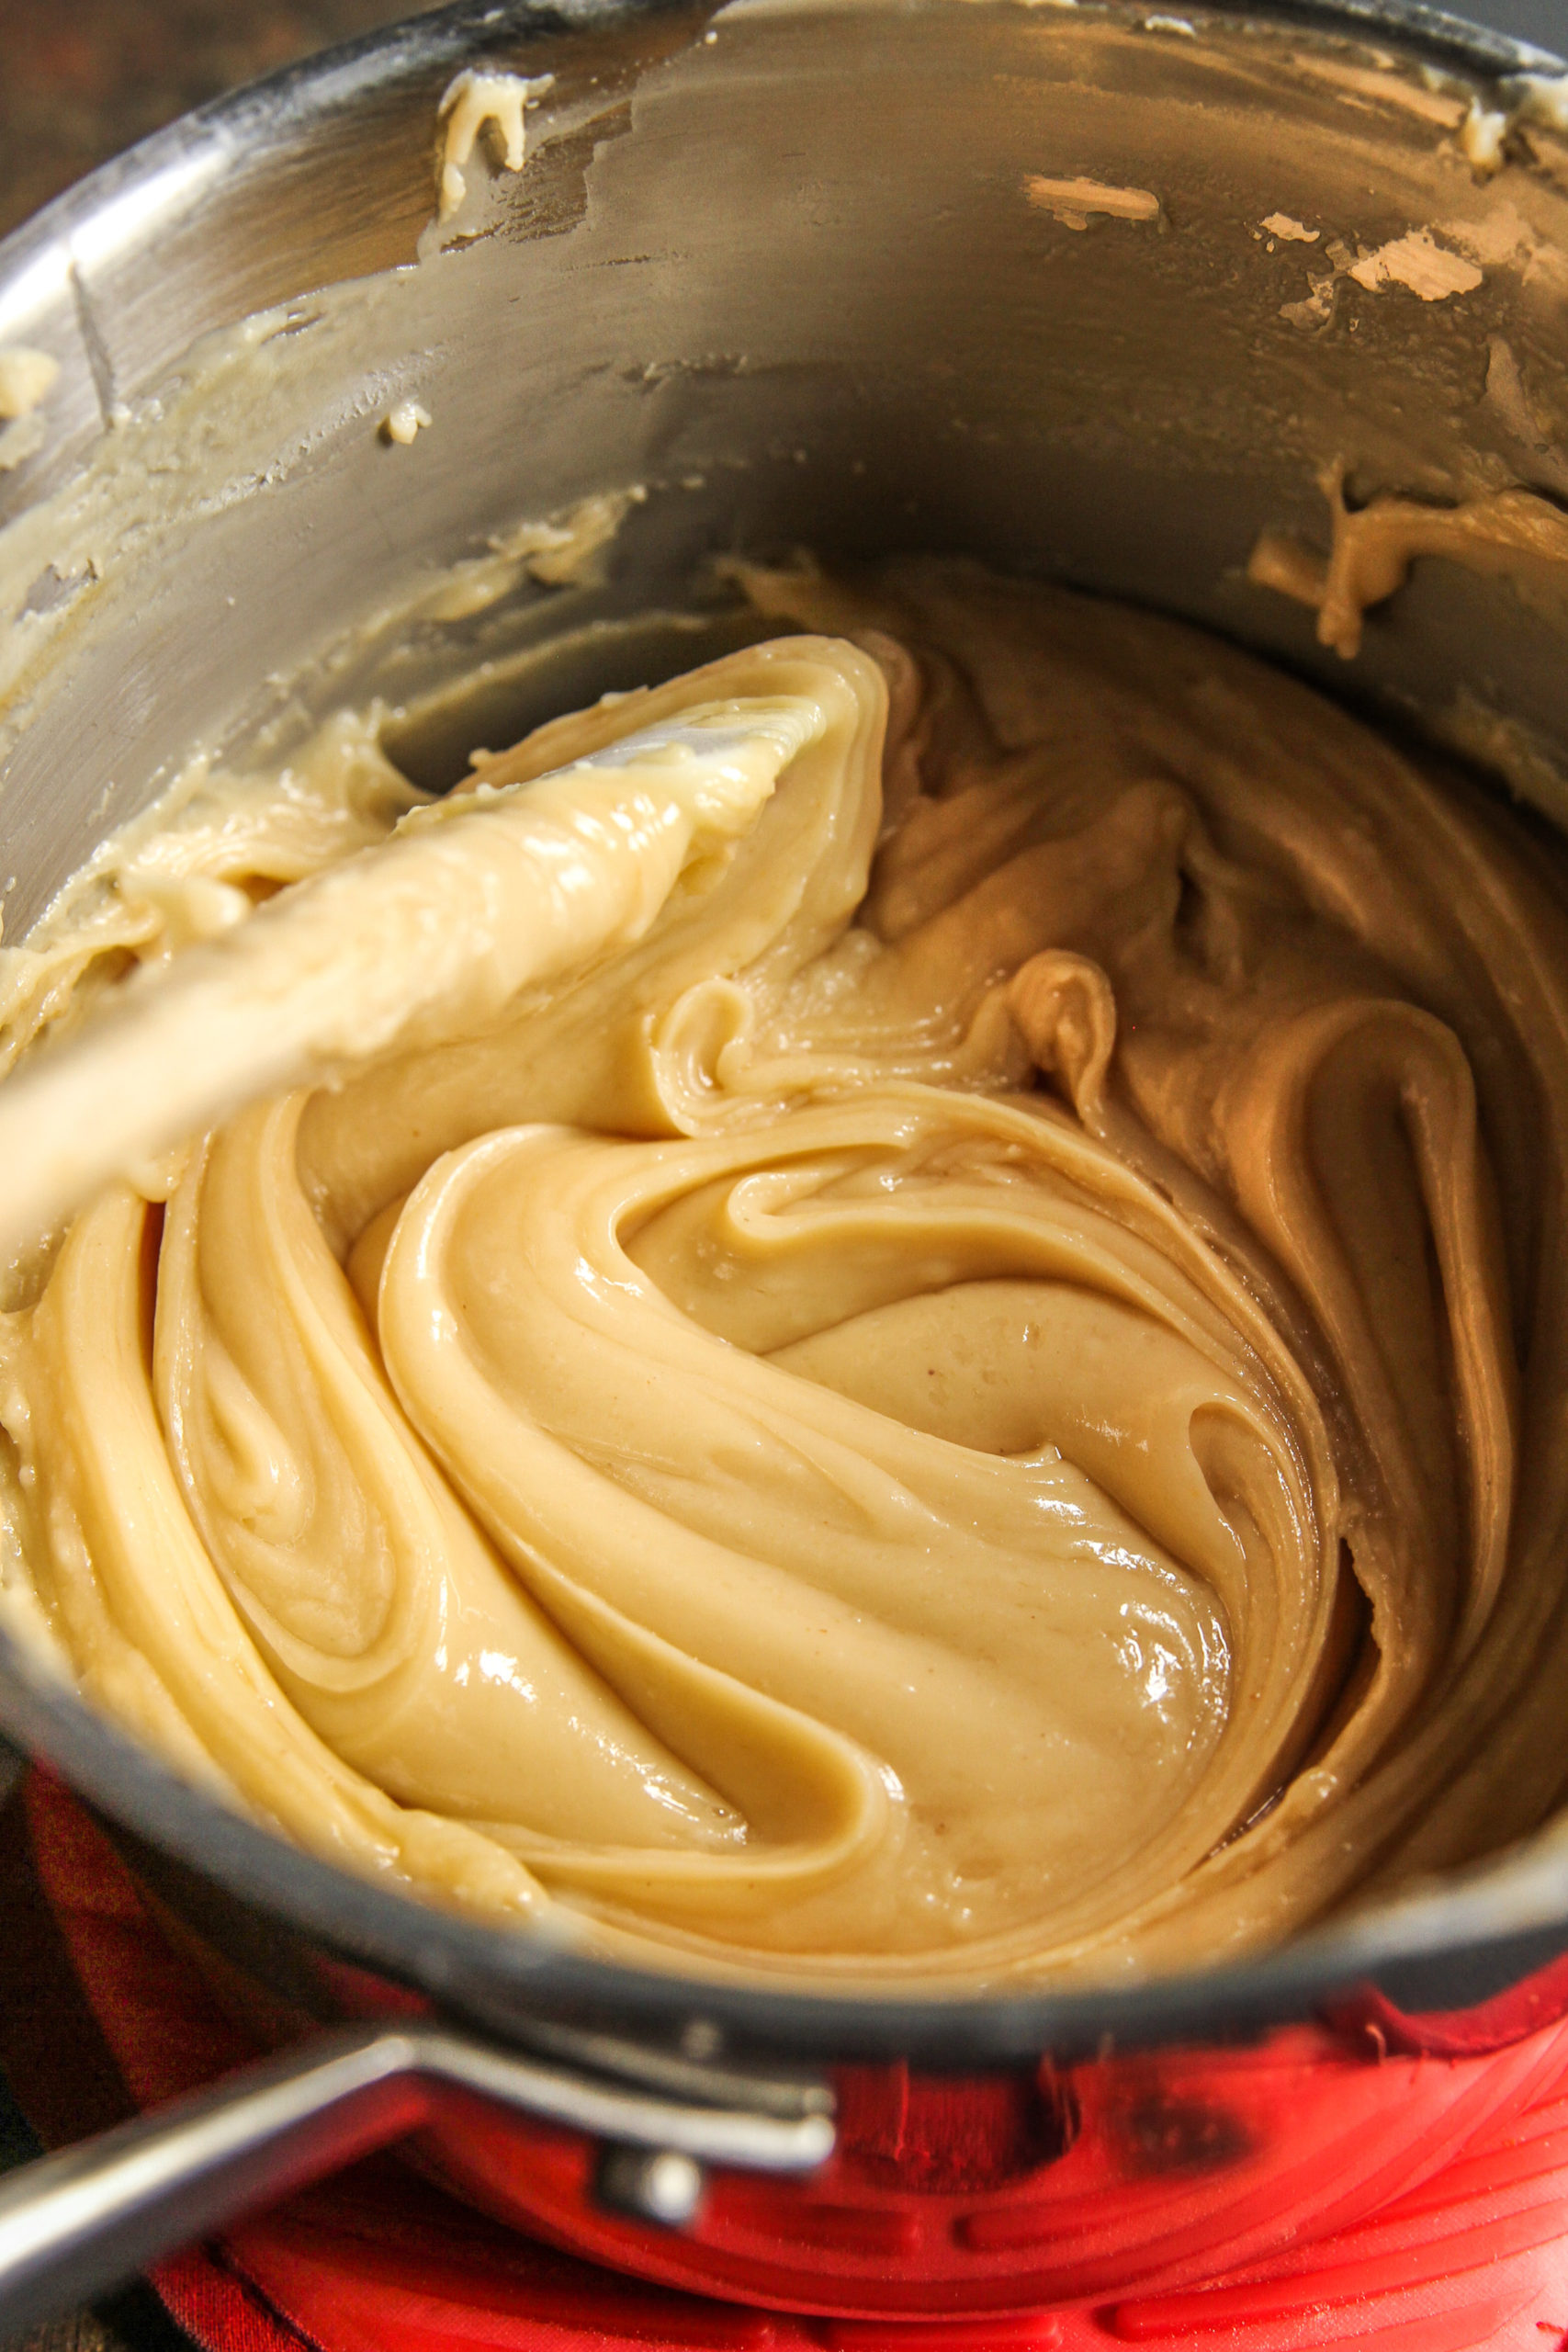 Mixing 5 ingredient peanut butter banana fudge